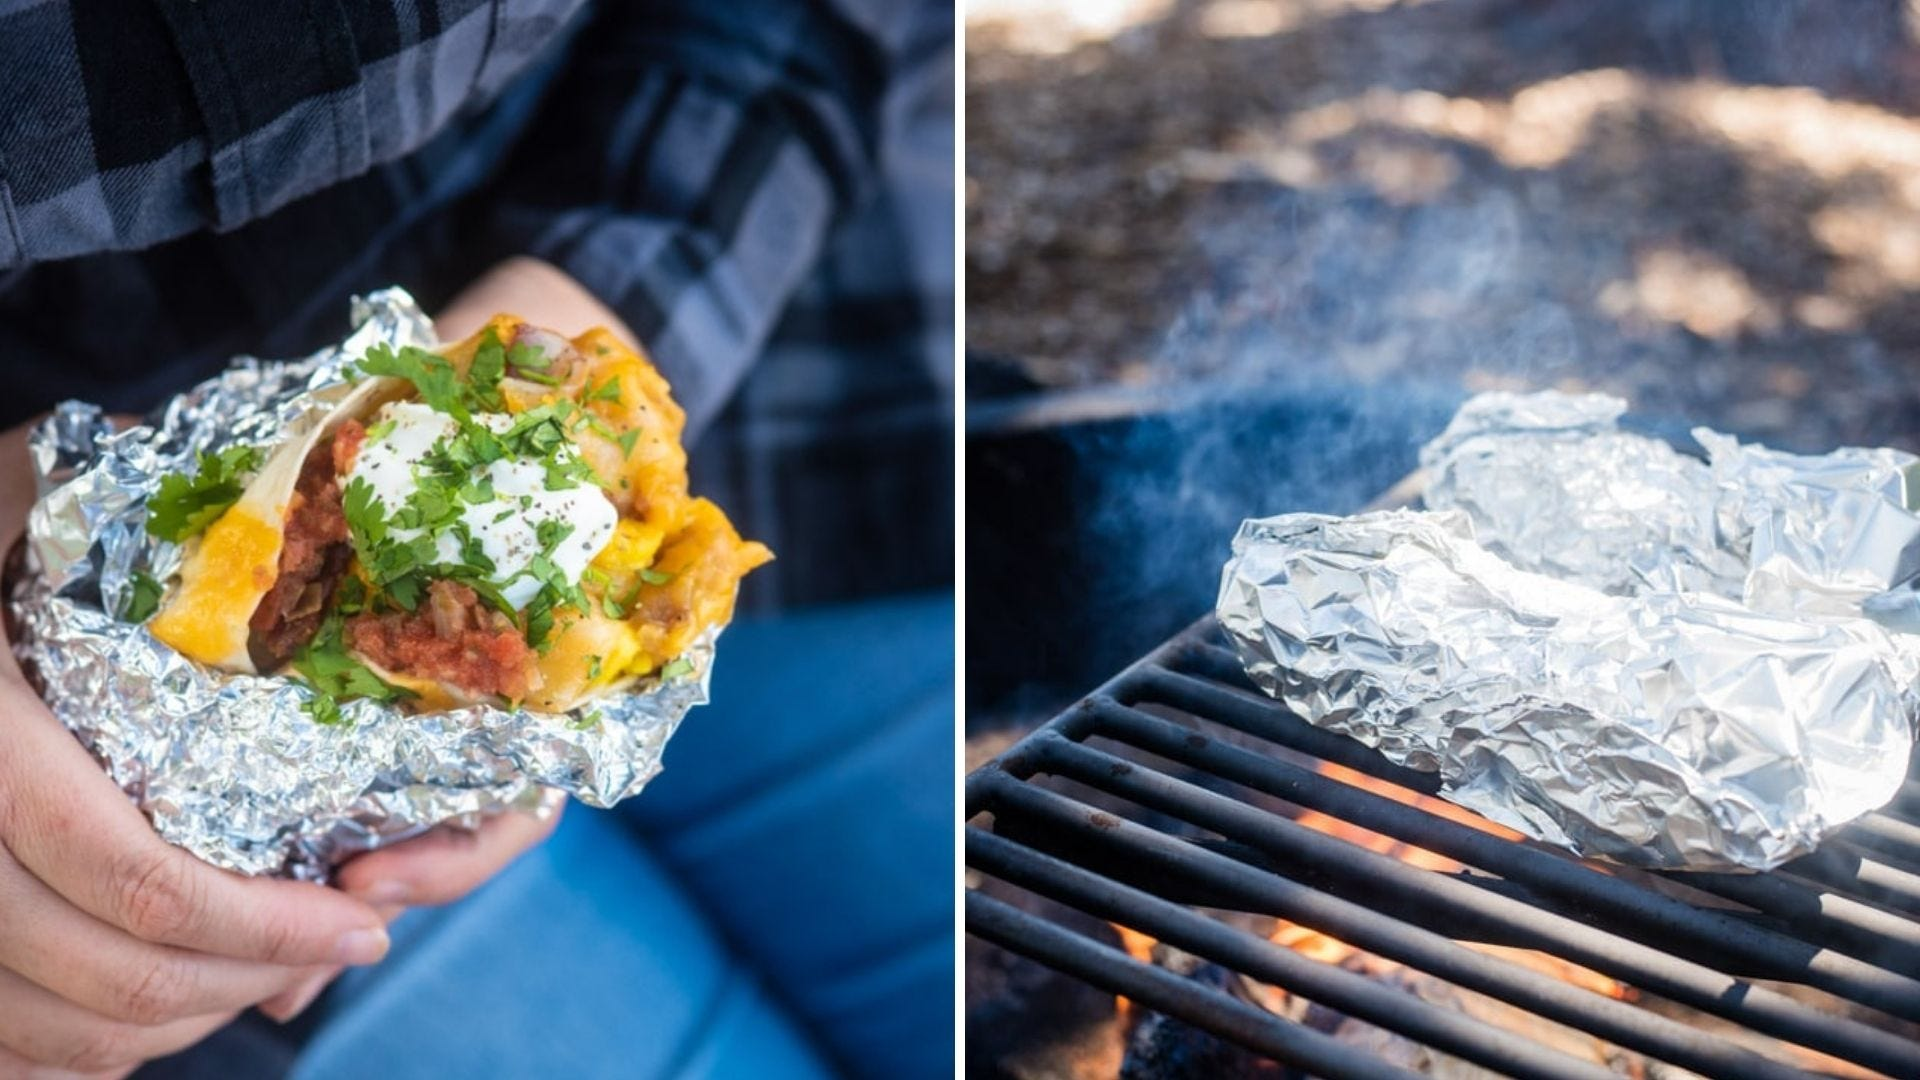 Someone holds a breakfast burrito and burritos wrapped in foil cook over a campfire